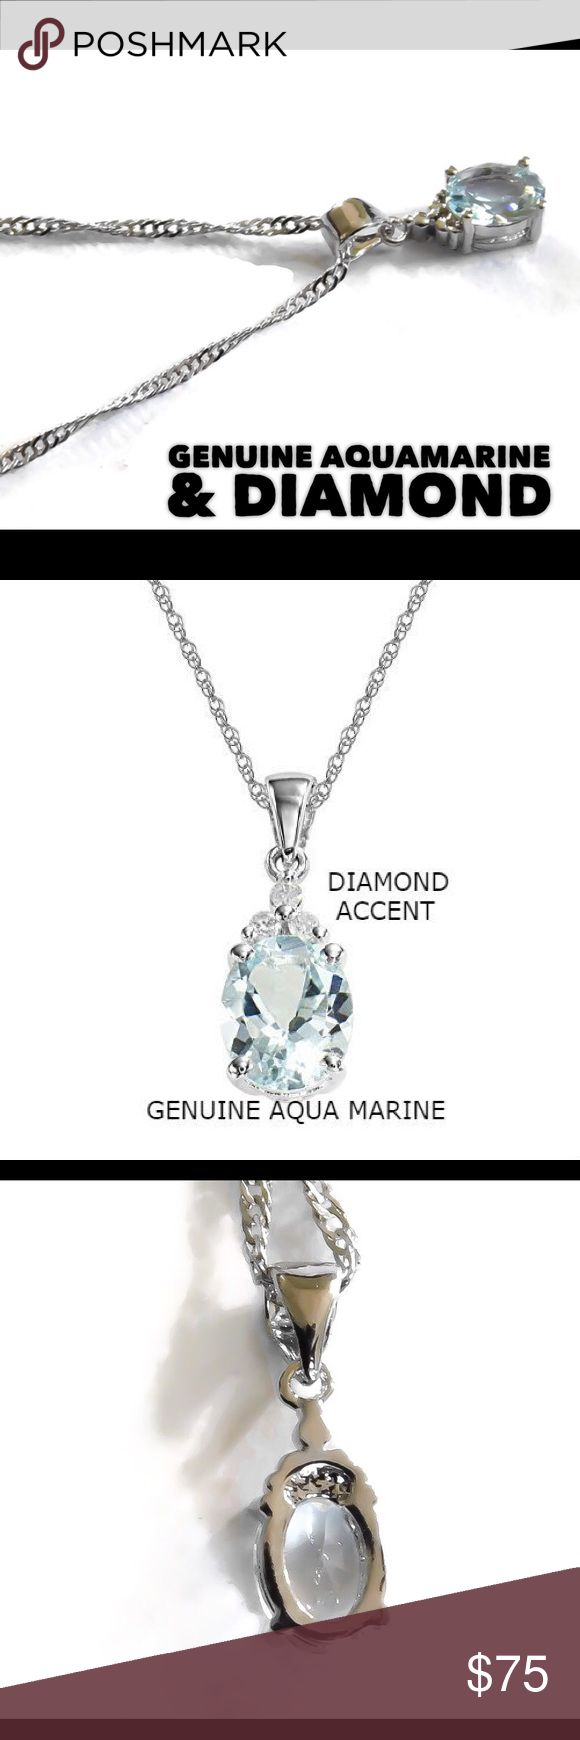 "925 Silver Aquamarine Diamond Accent Necklace A gorgeous solid .925 sterling silver genuine 2ct Aquamarine and diamond Accent necklace. The pendant and Singapore chain are hallmarked with 925. Total length is 18"" inches. nejd Jewelry Necklaces"